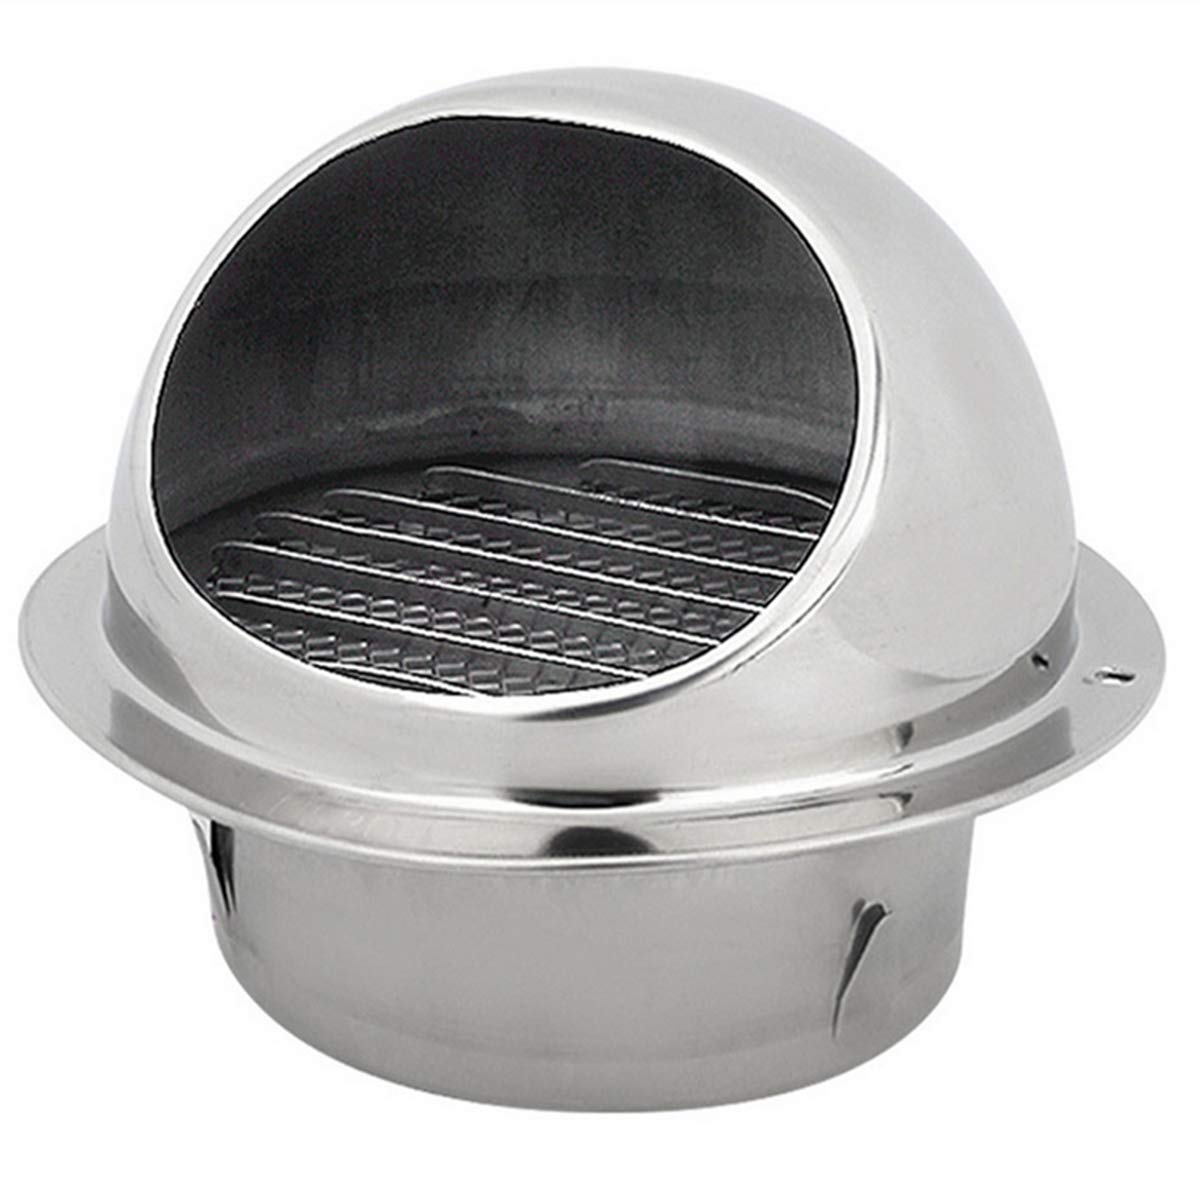 MIAO YUAN 1Pack Stainless Steel Air Vent Round Vent, Mesh Cover External  Extractor Wall Vent, Stainless Steel Exhaust Hood for Bathroom Office  Kitchen ...